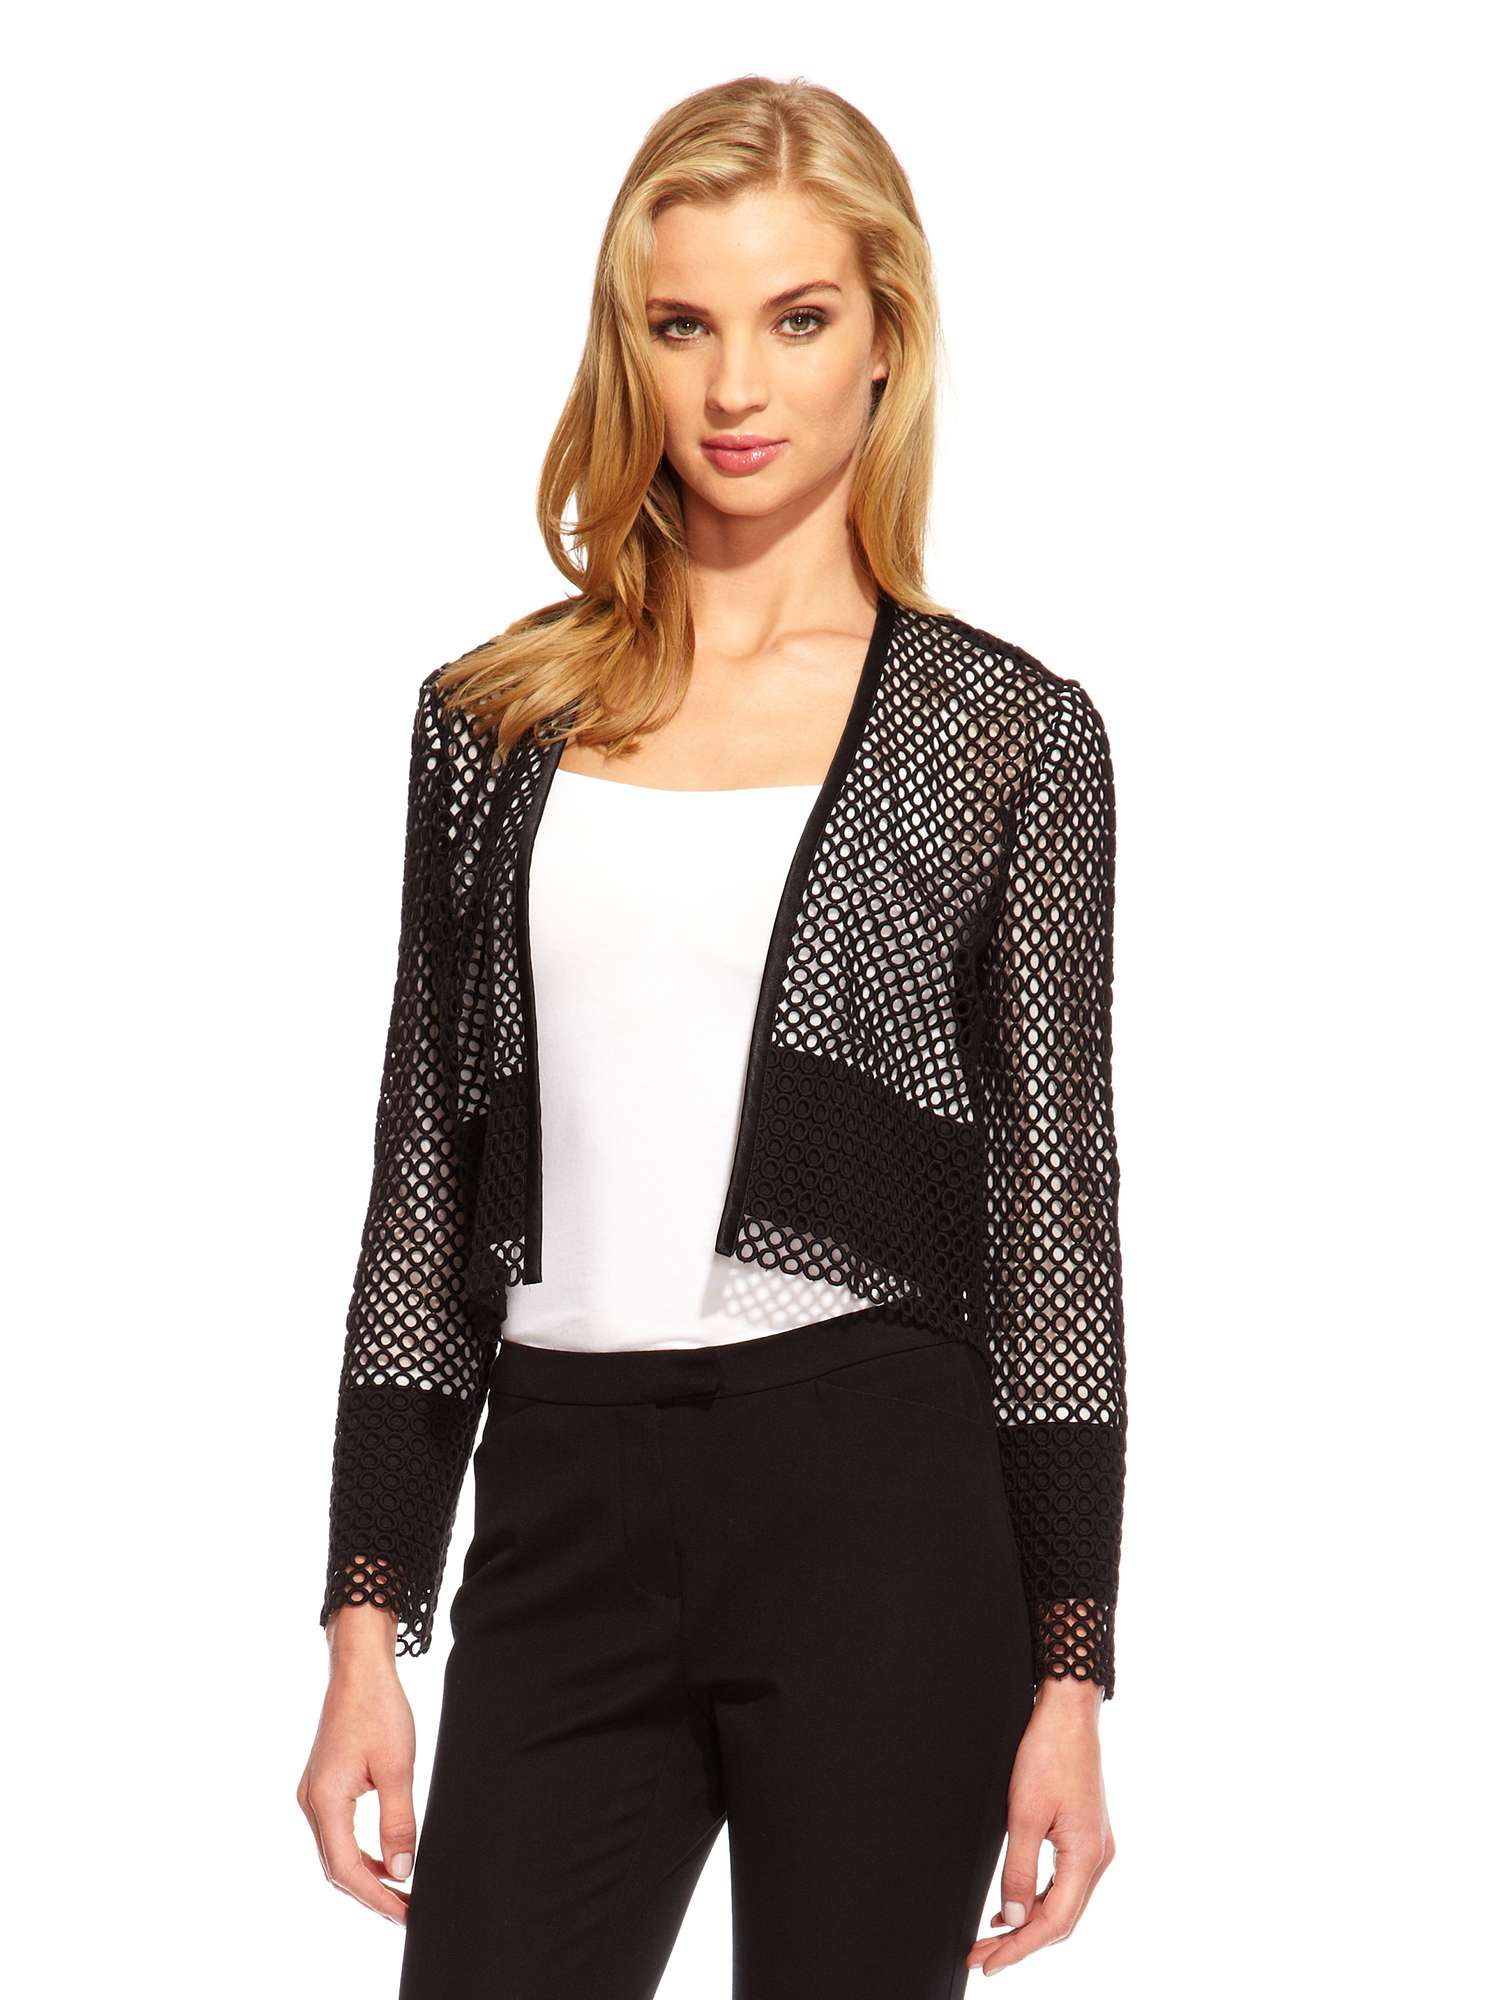 Dress Jacket in Eyelet a Damsel Tq6xFw